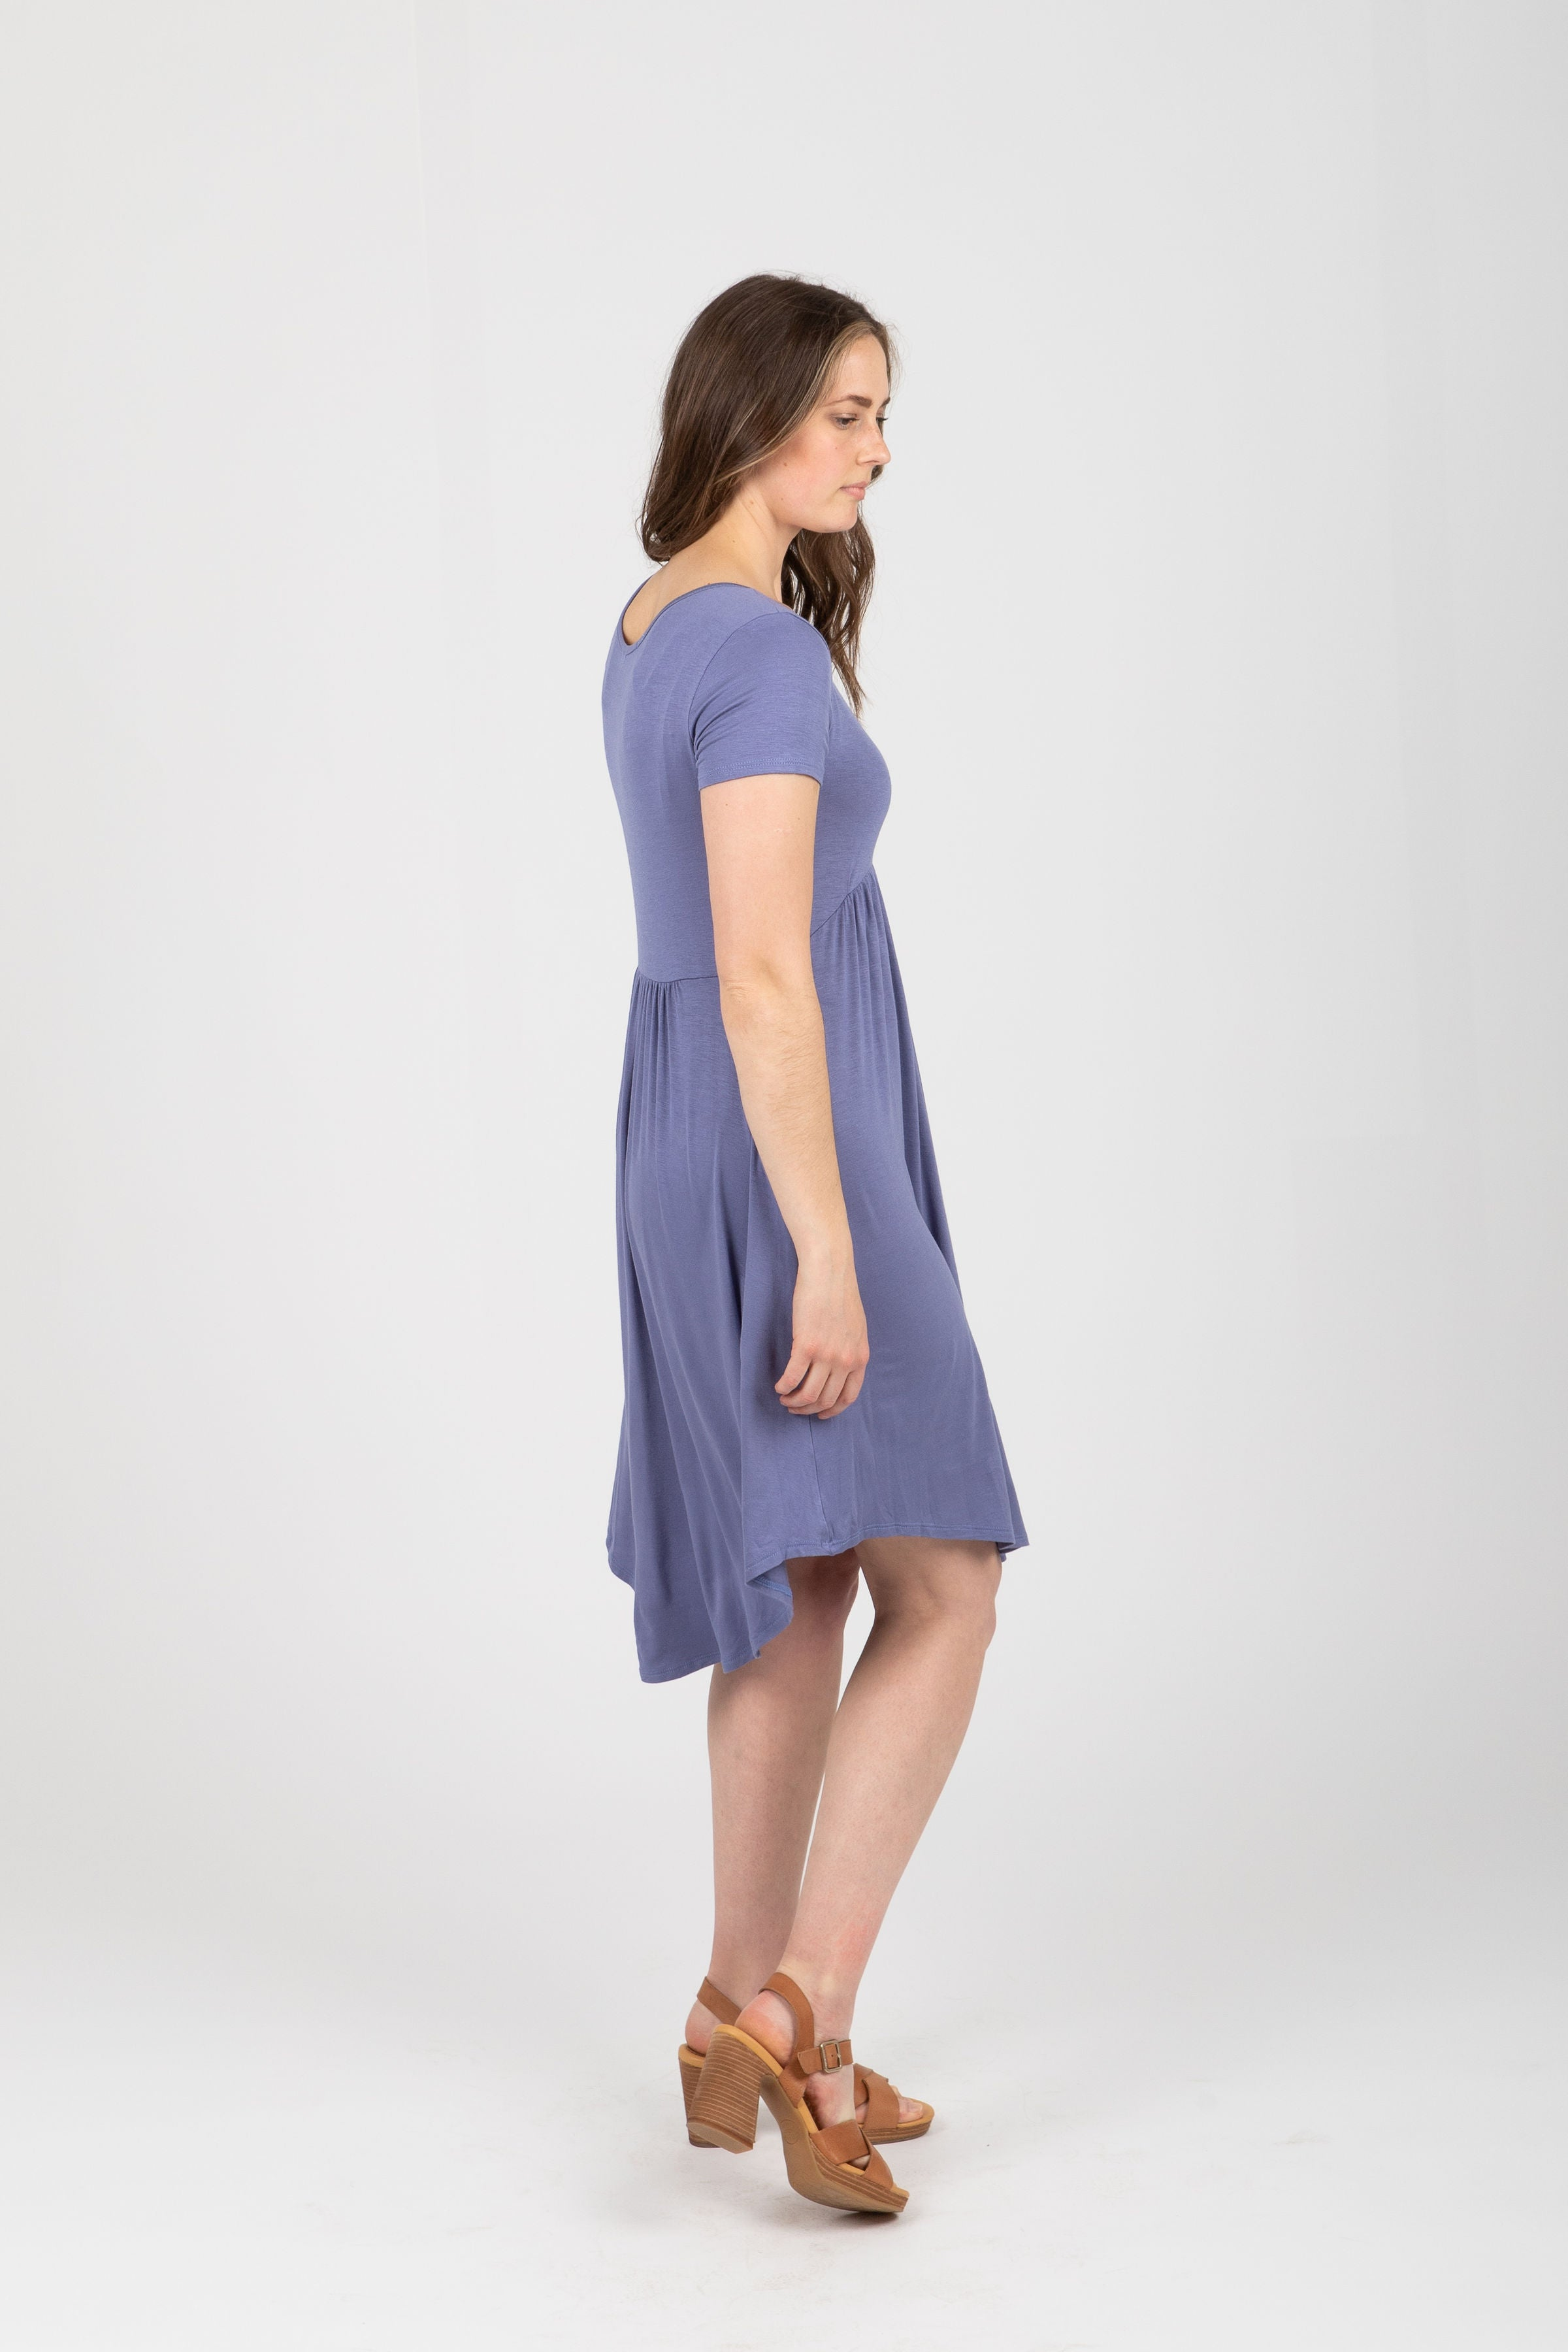 The Pearl Empire Casual Dress in Faded Indigo